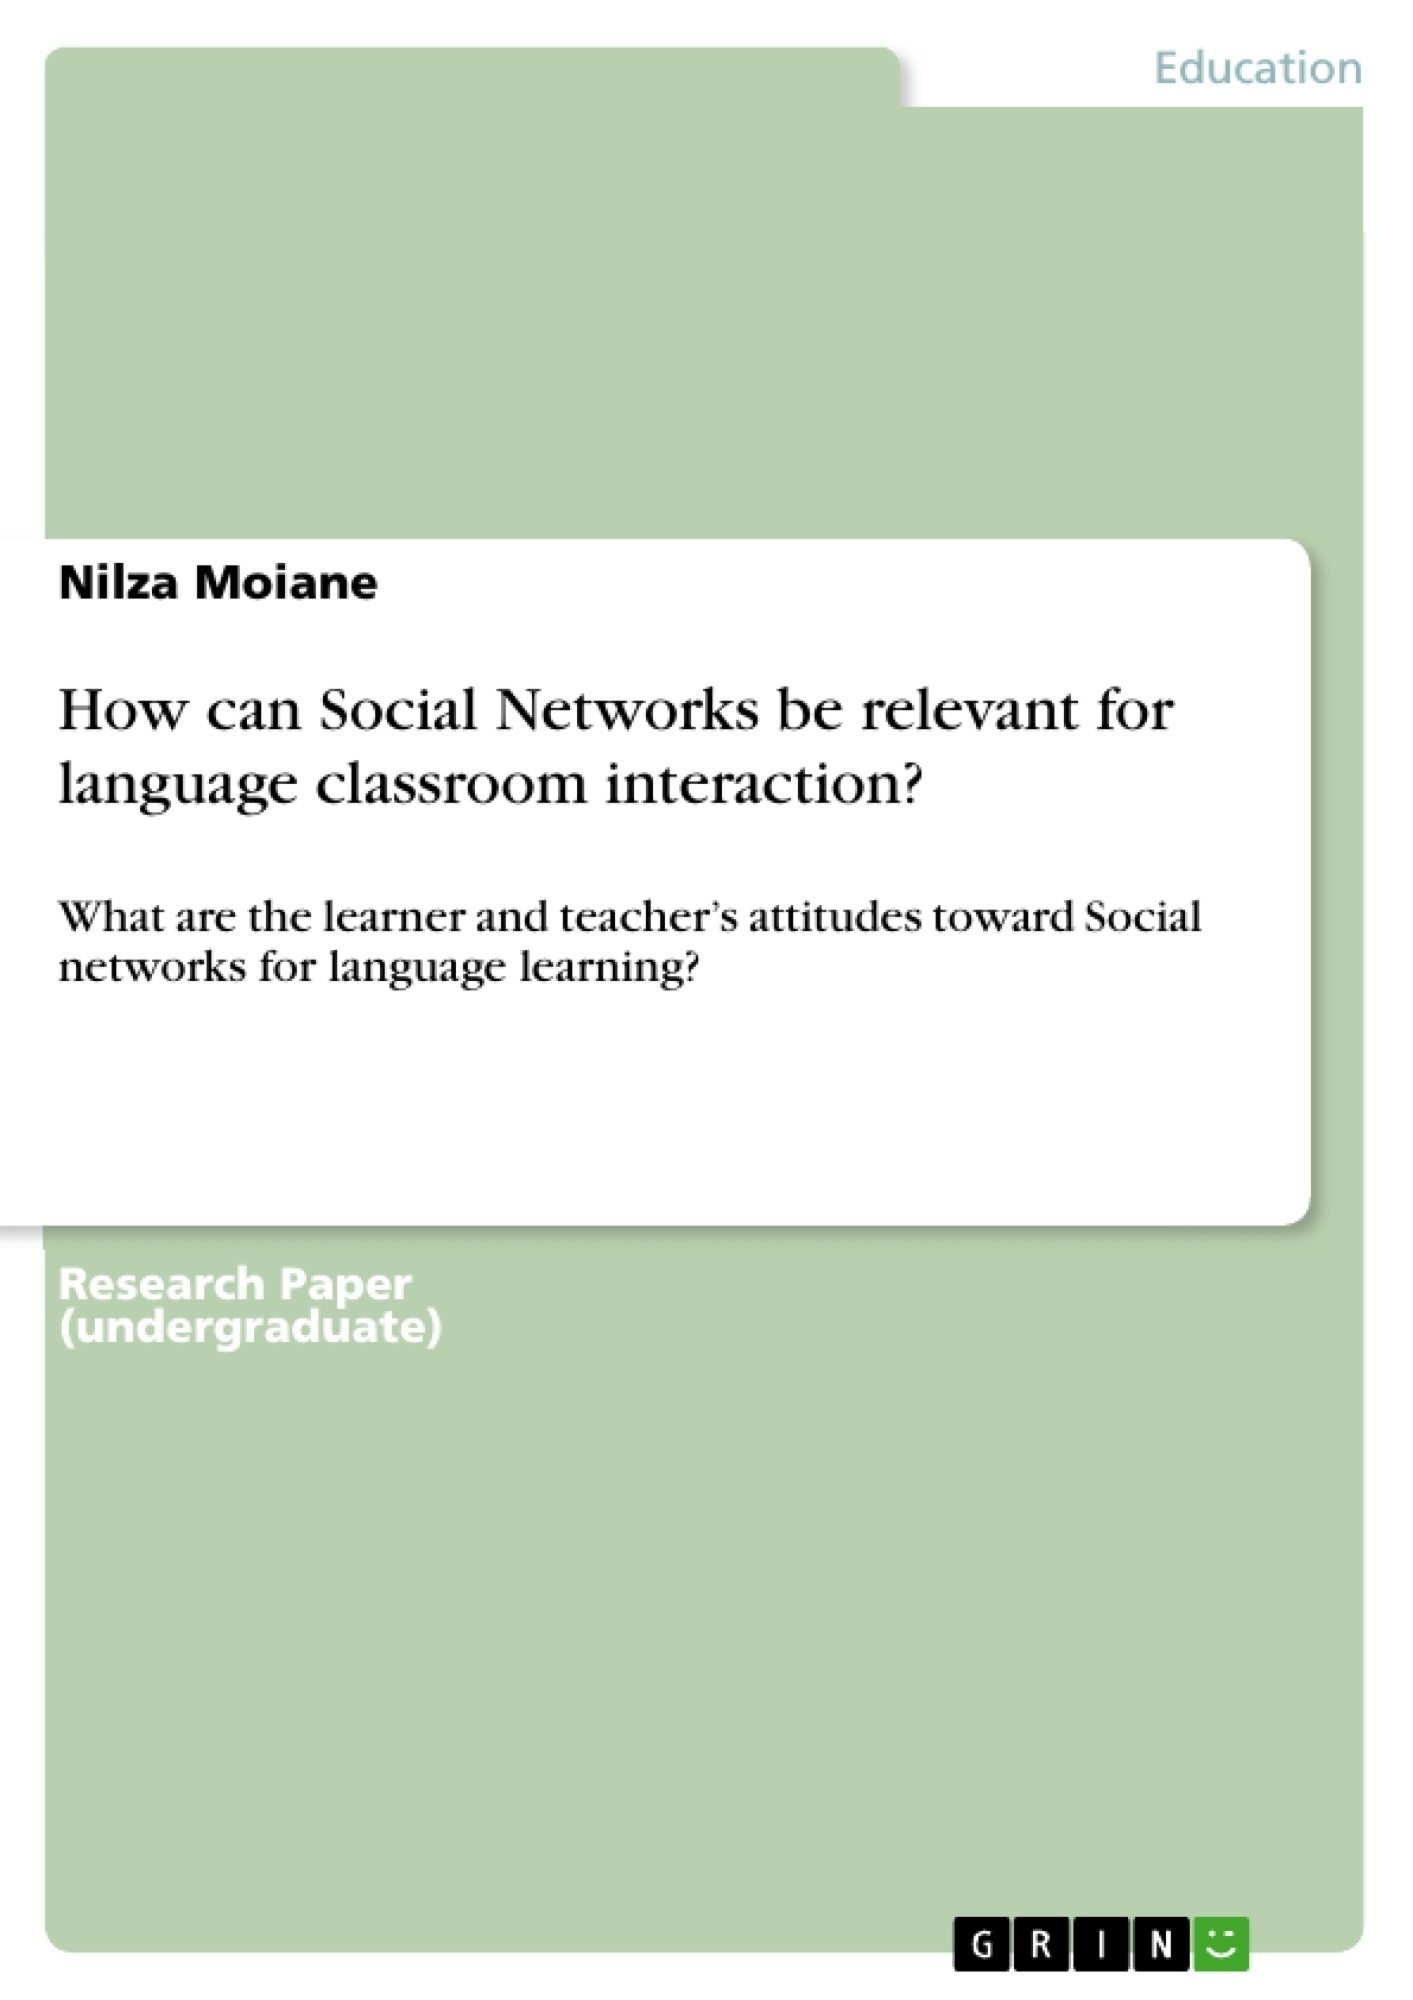 Title: How can Social Networks be relevant for language classroom interaction?